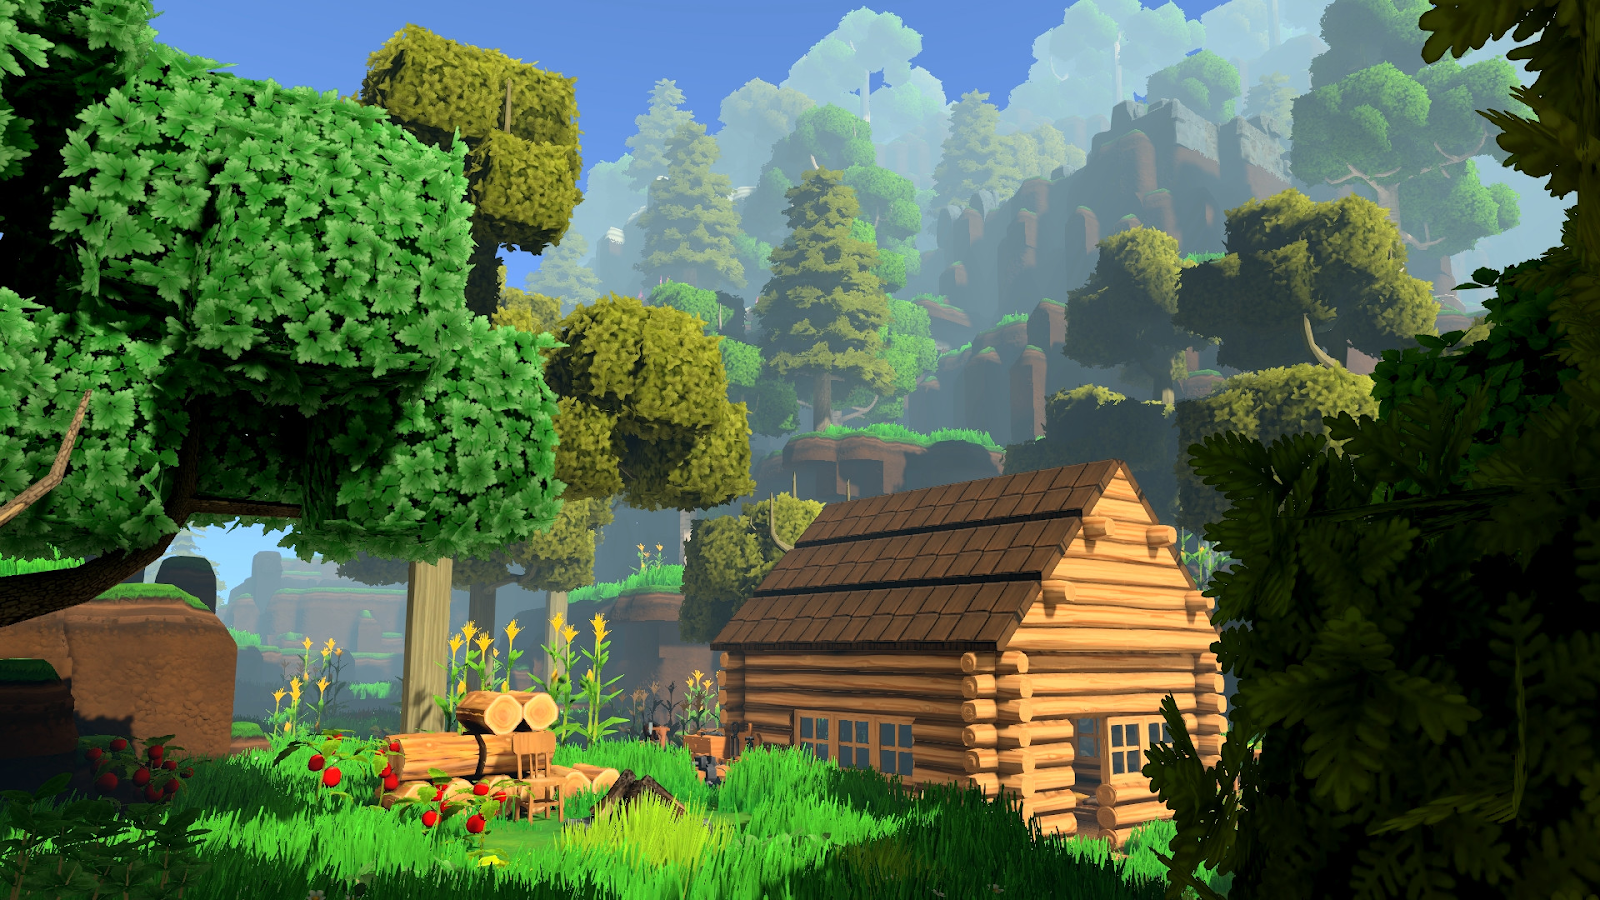 Games Can Teach About Climate Change and Motivate Ecofriendly Actions